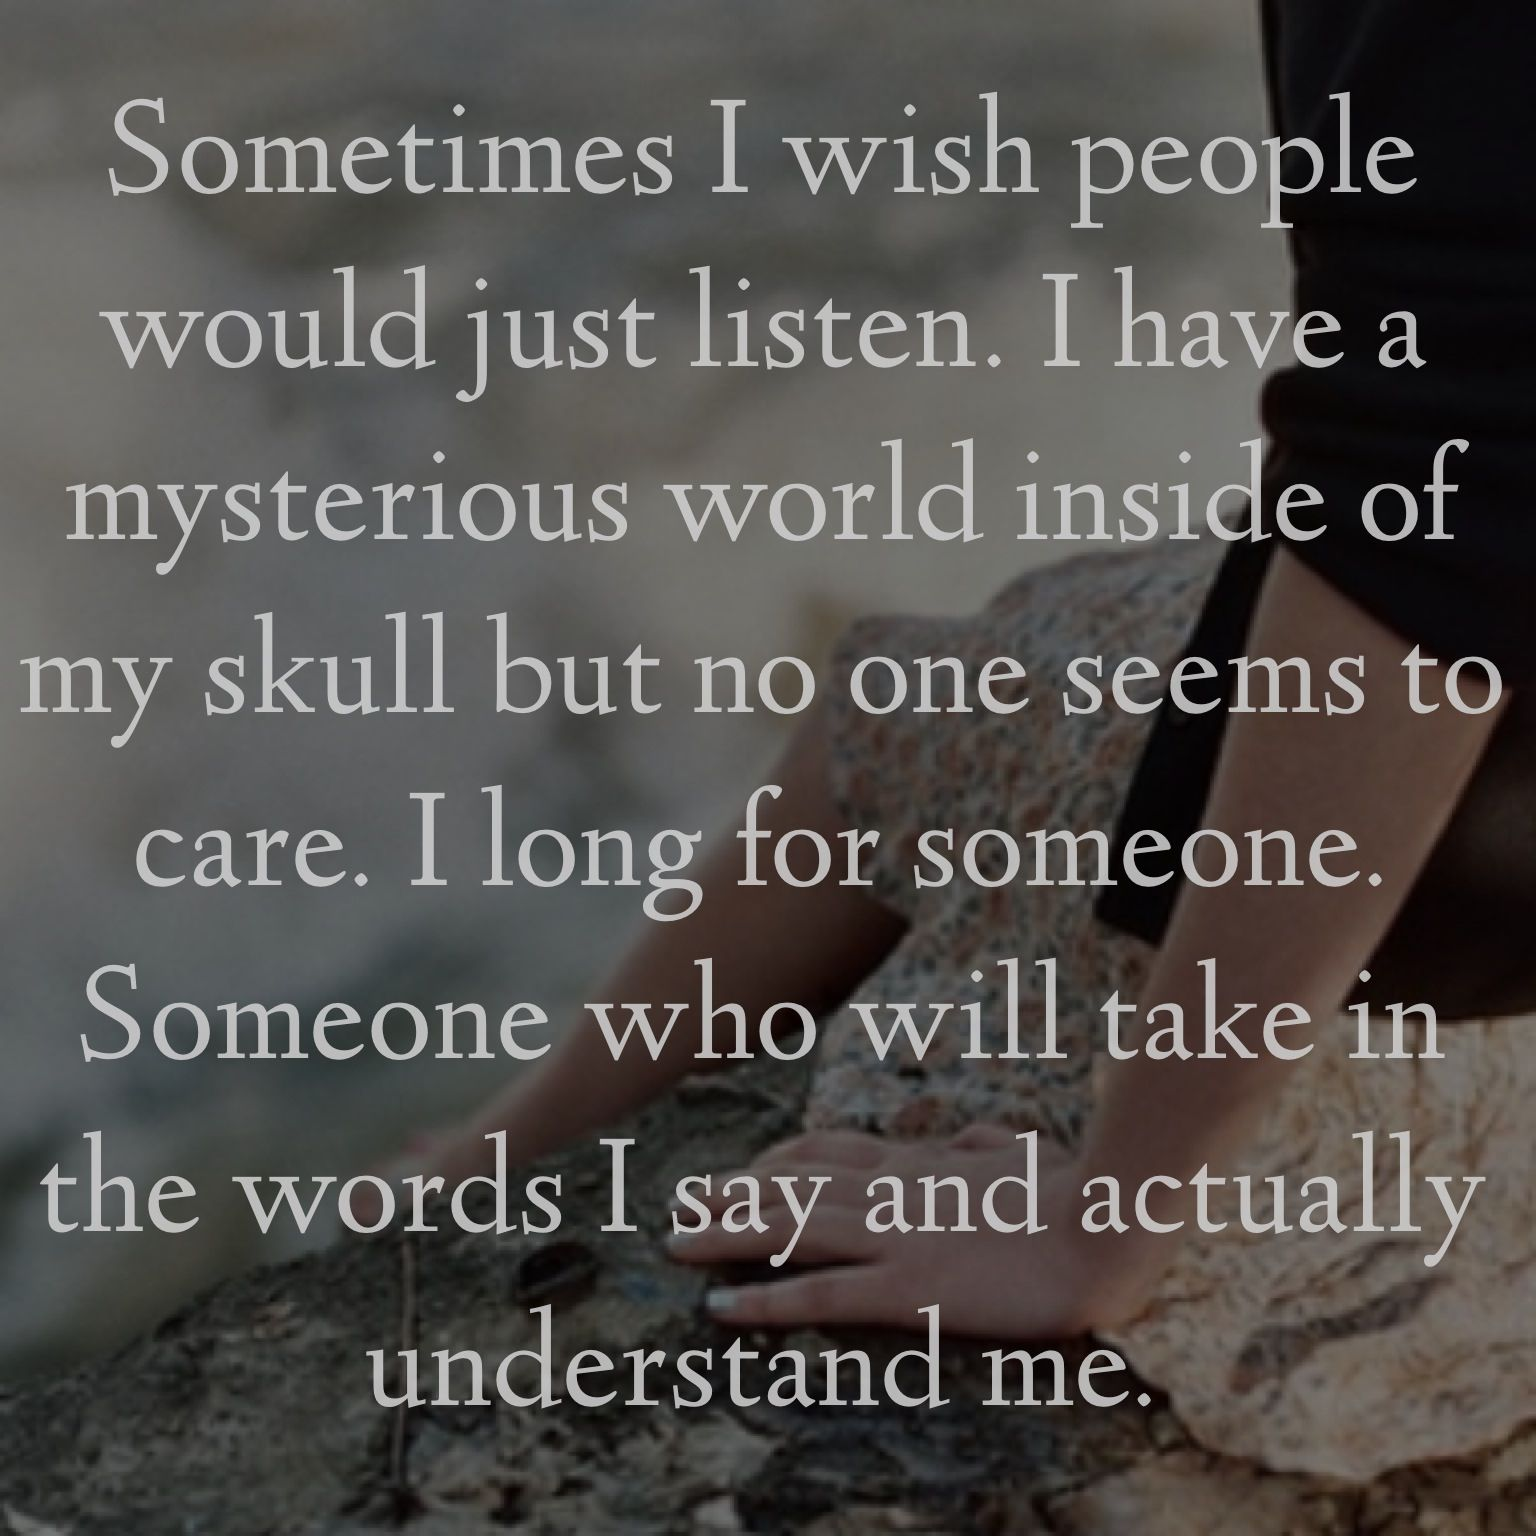 """Sometimes I wish people would just listen I have a mysterious world inside my skull but no one seems to care I long for someone"